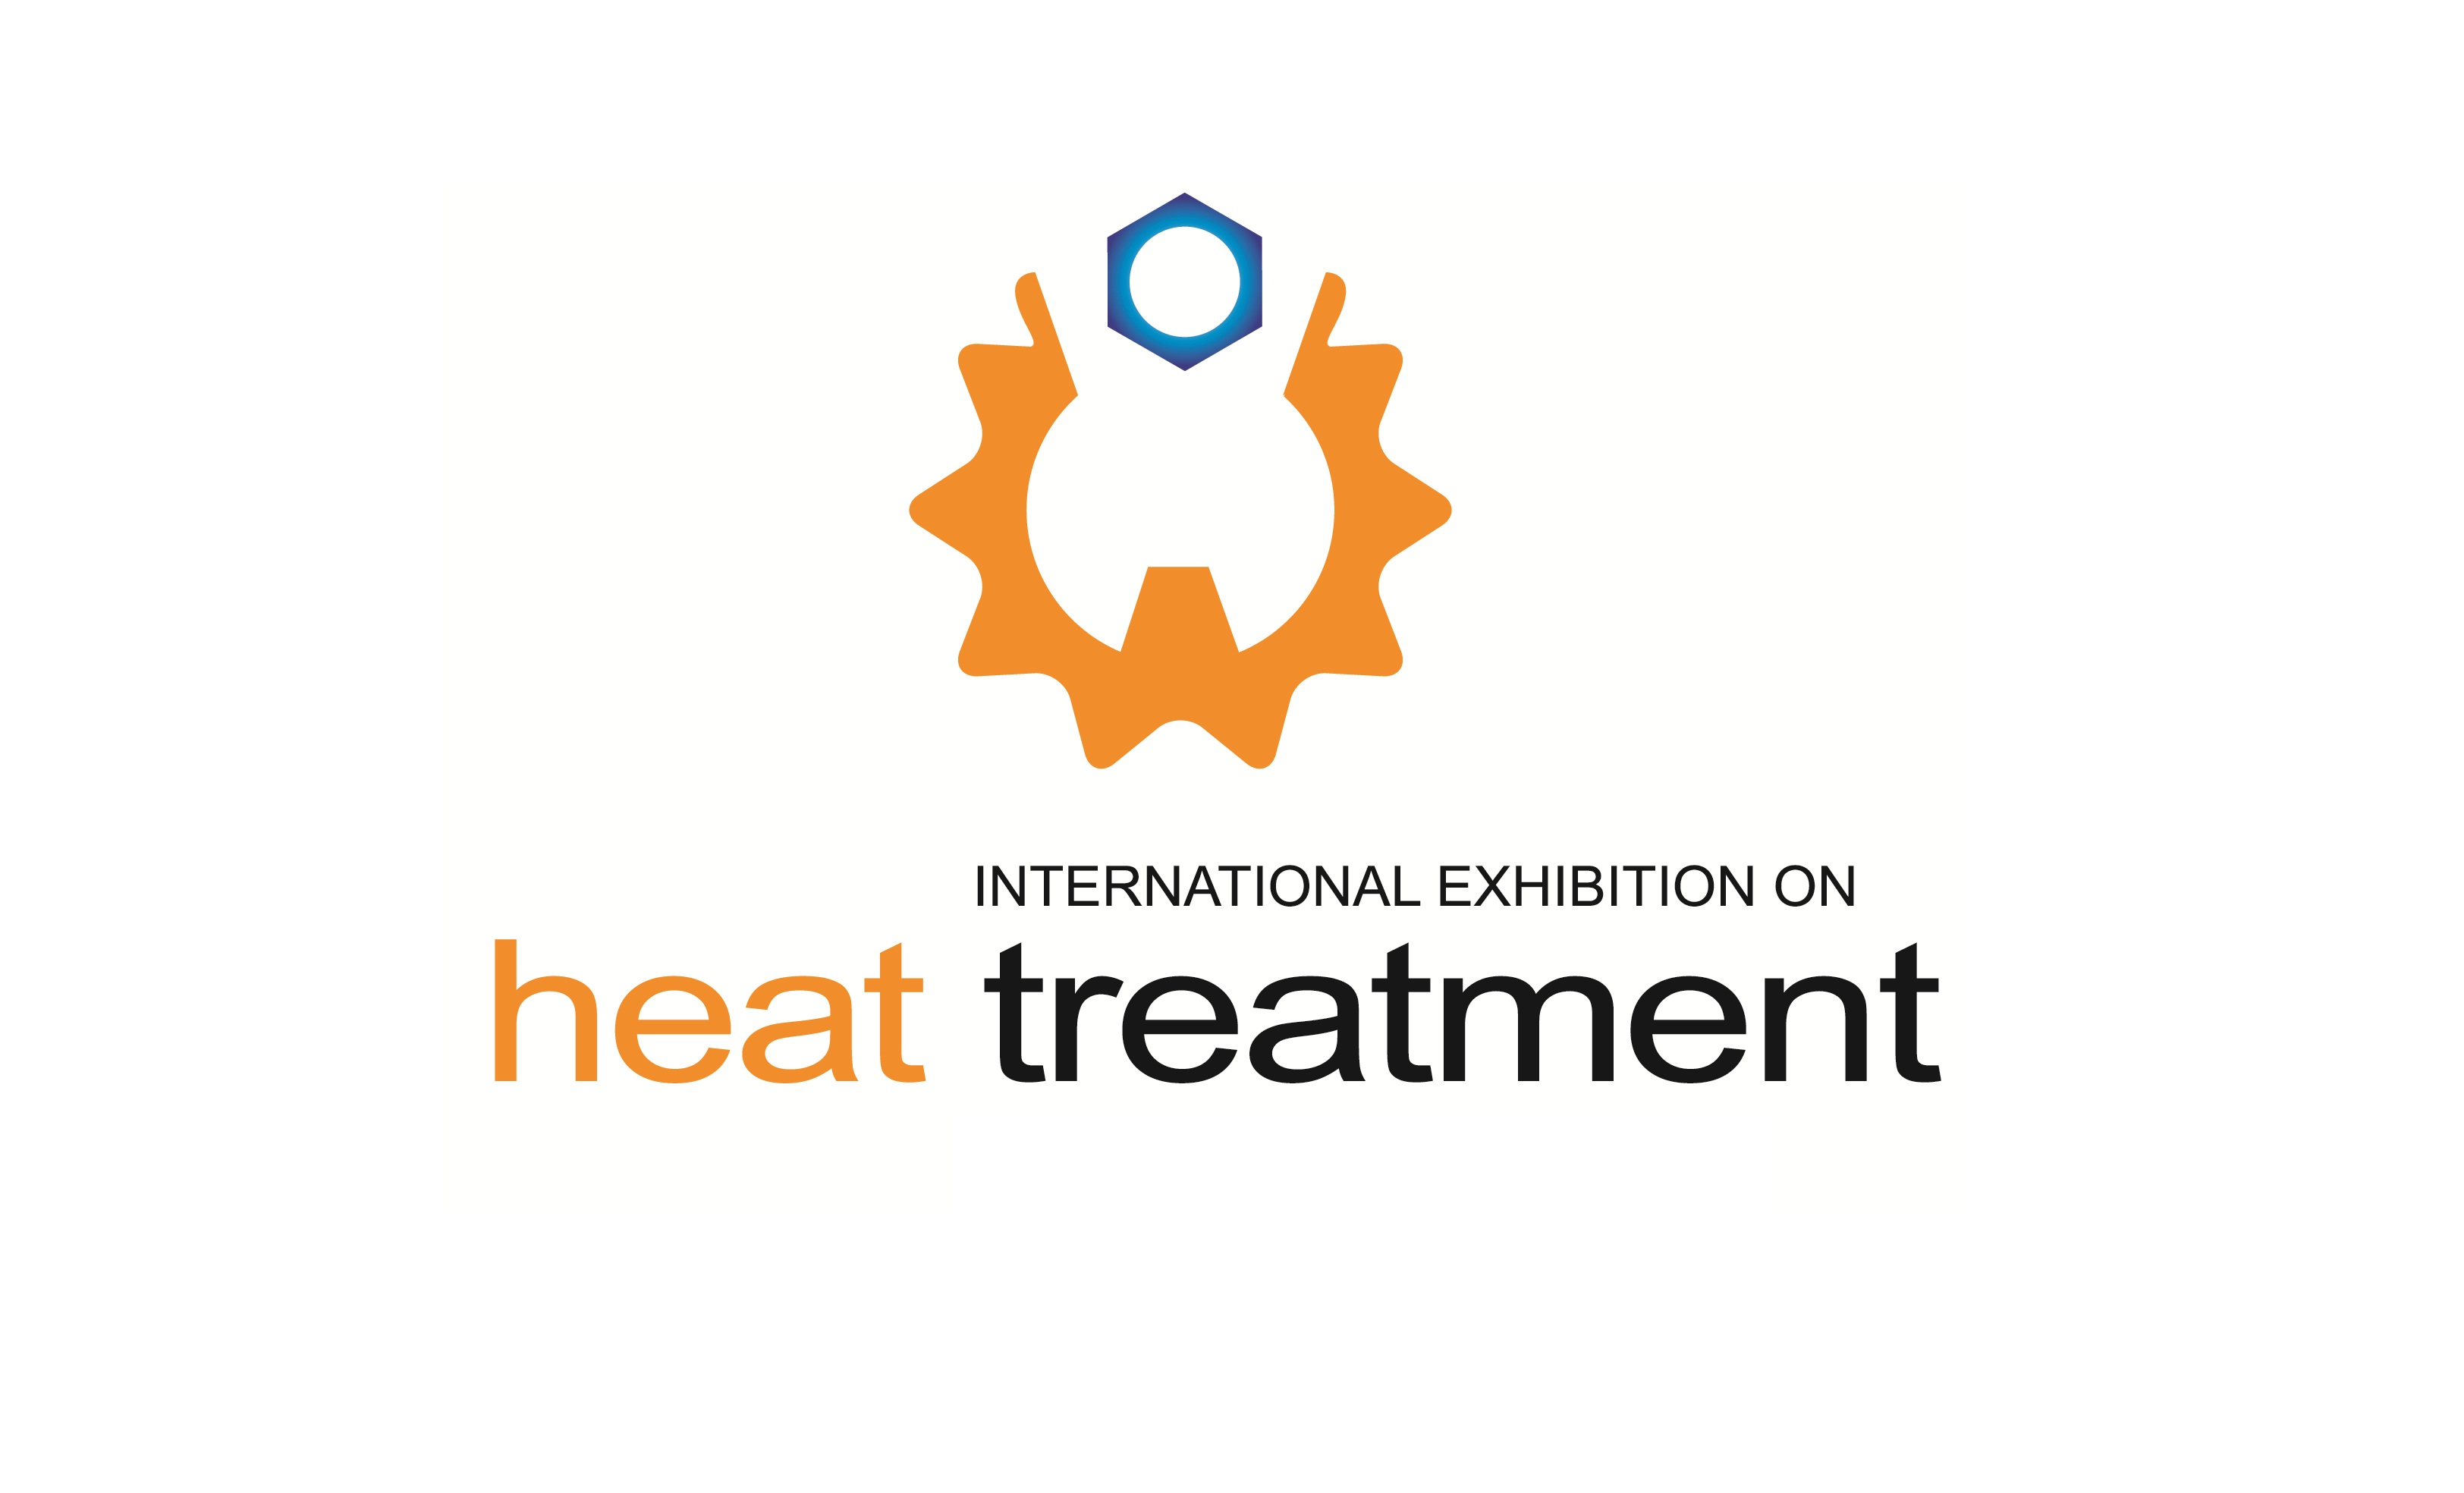 The International Exhibition on Heat Treatment 2017 - SECO/WARWICK